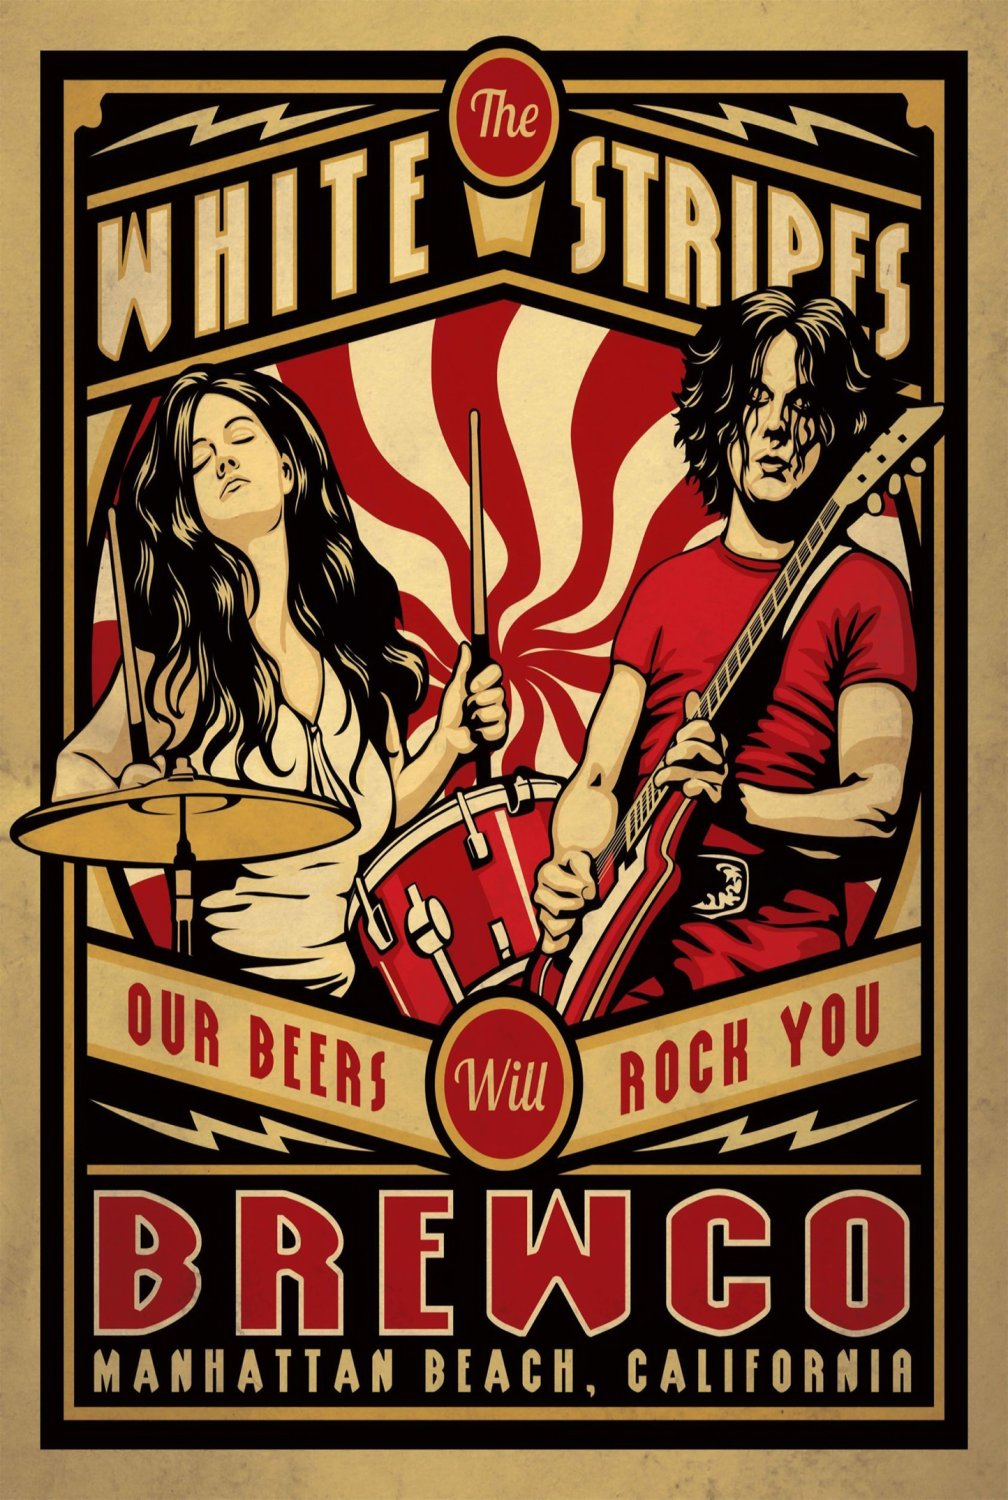 The White Stripes Our Beers Will Rock You Brewco Concert   24x35 inches Canvas Print